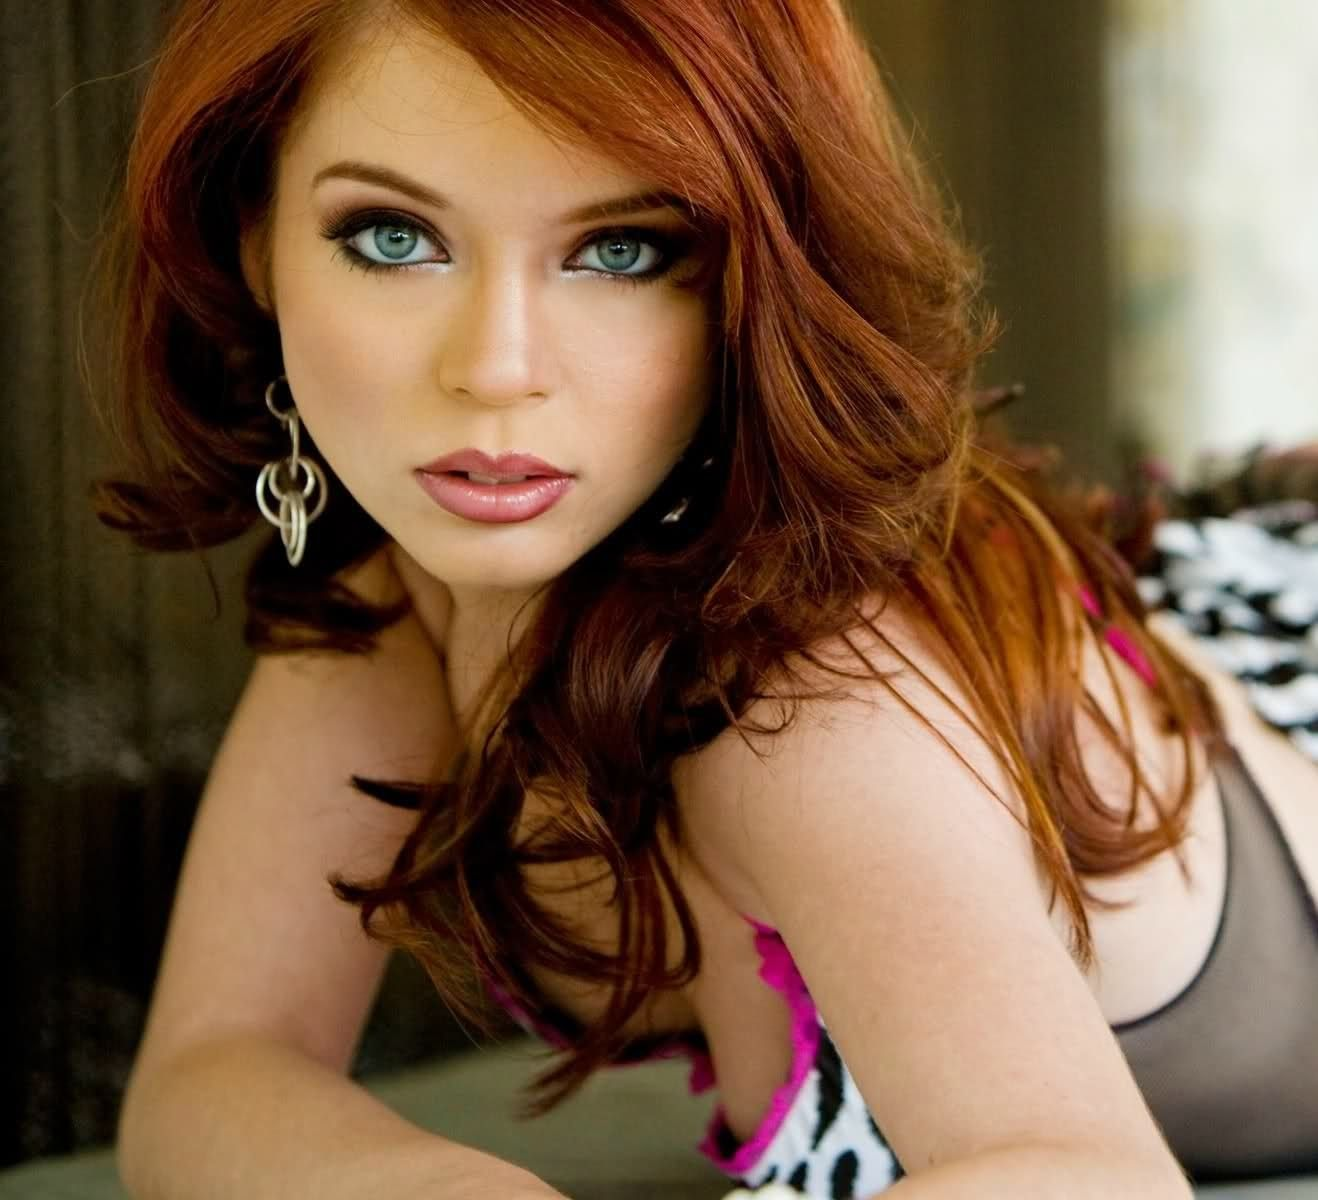 red hair and blue eyes actress